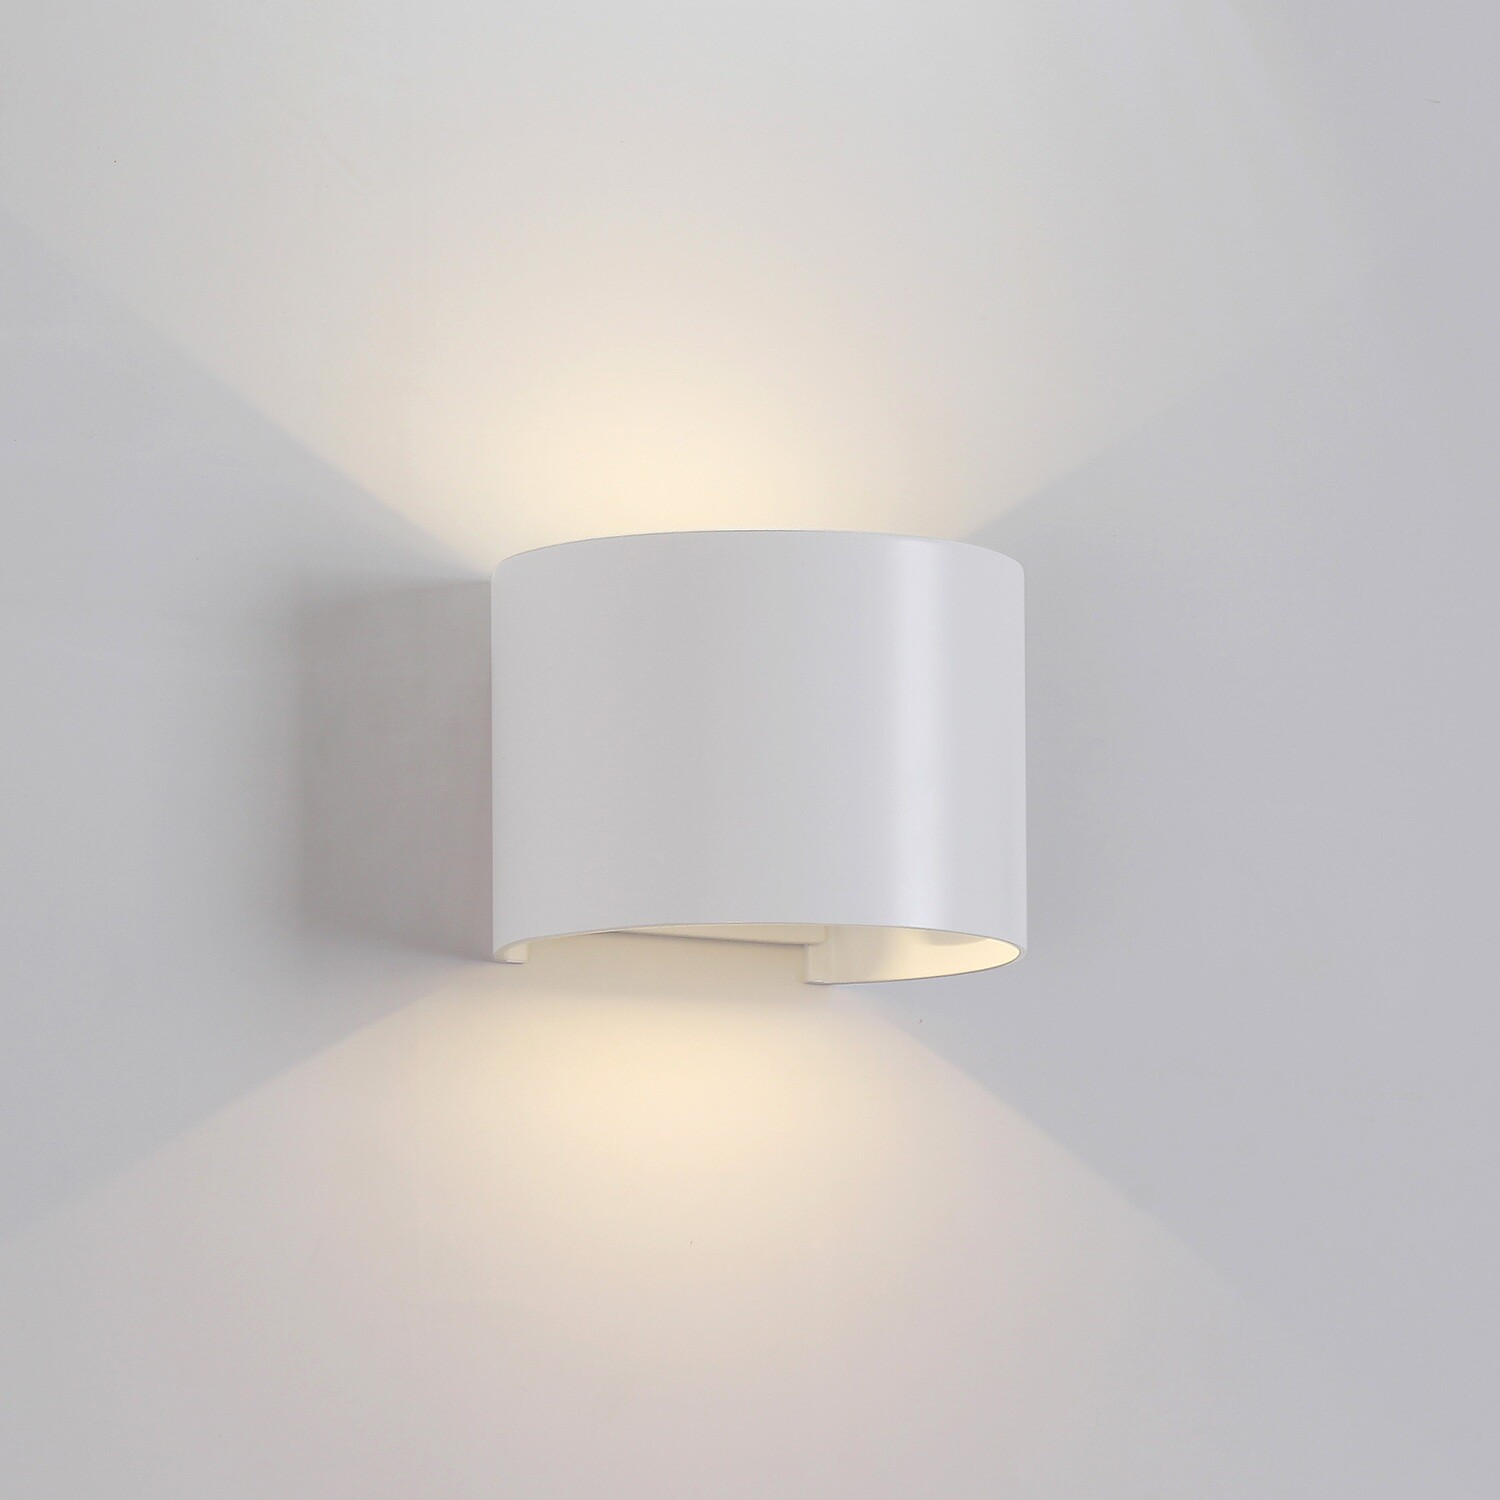 Davos Wall Lamp cylinder, 12W LED, 3000K, 1100lm, IP54, Sand White